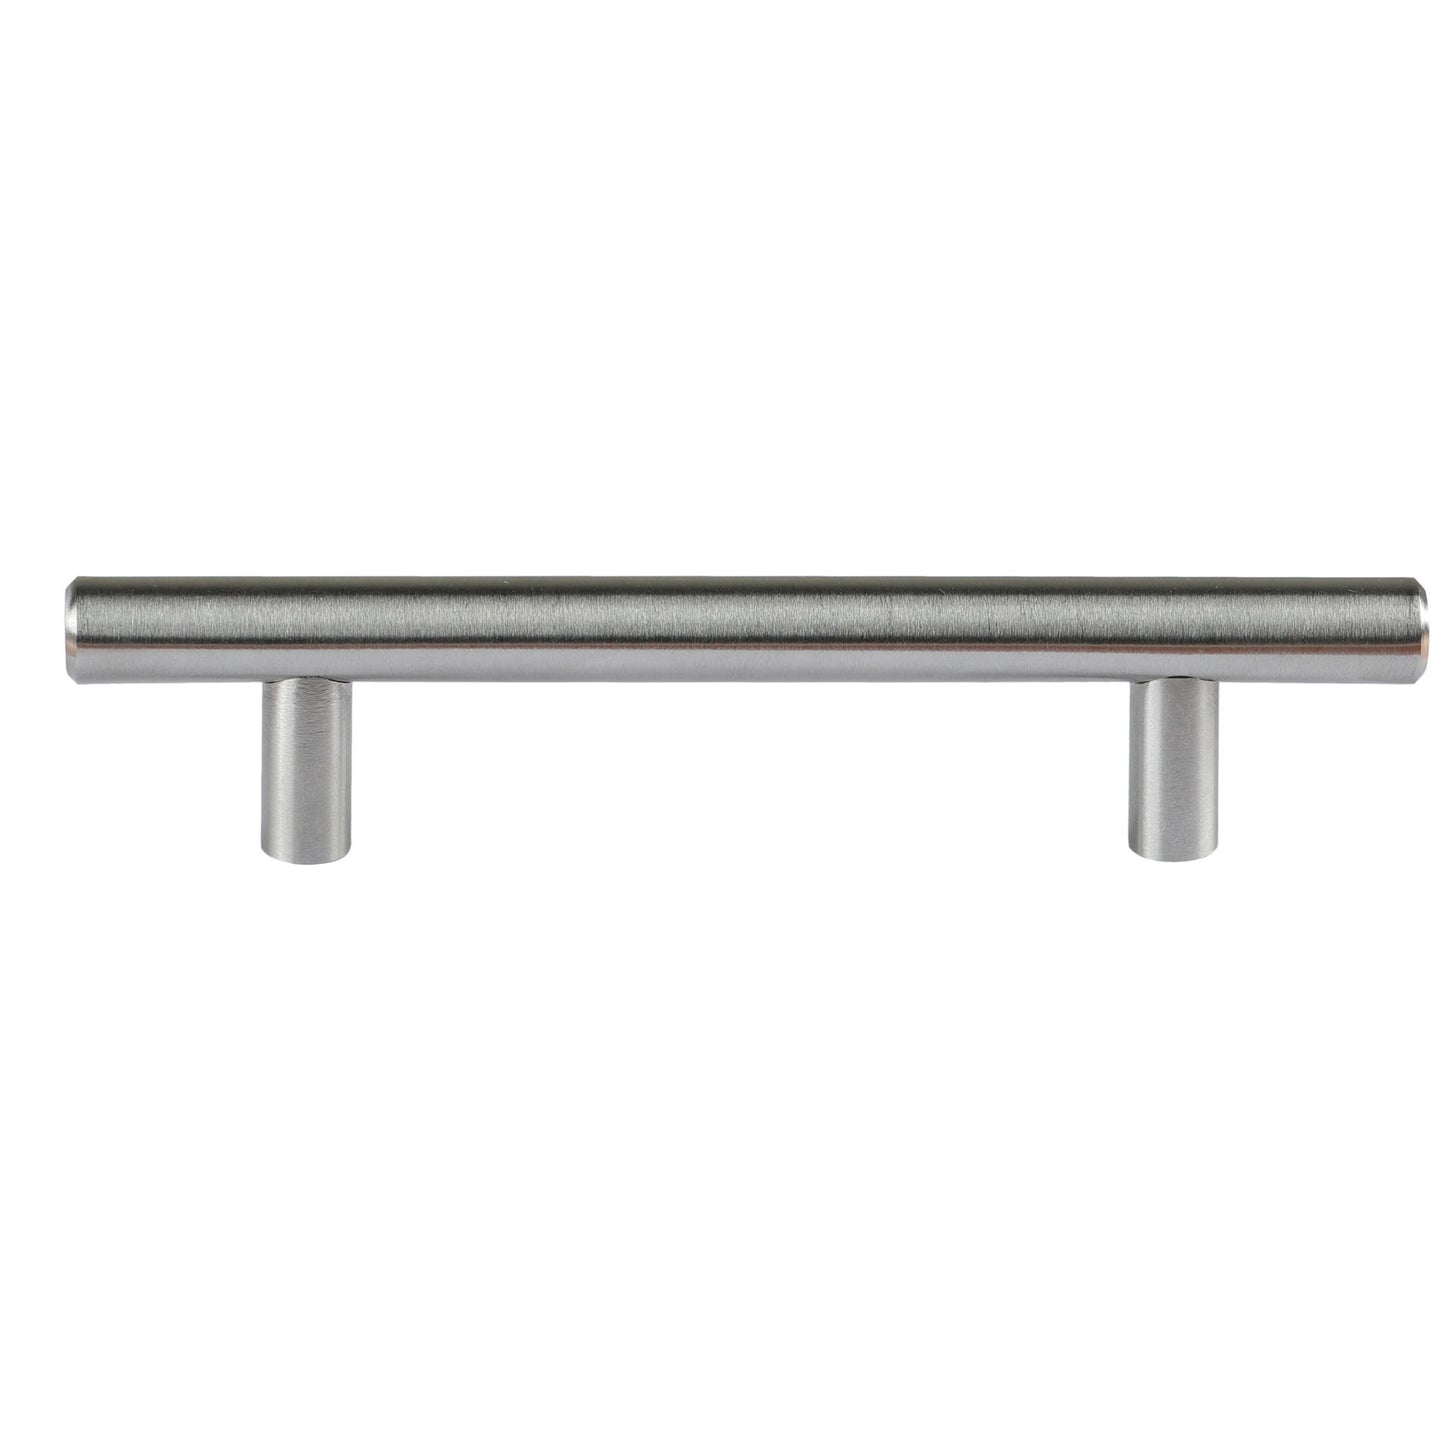 Cortesi Home Stockholm Contemporary T Bar Cabinet Pulls Kitchen Door Handles, 6 Inch (120mm) Length in Brushed Aluminum, 10 Pack